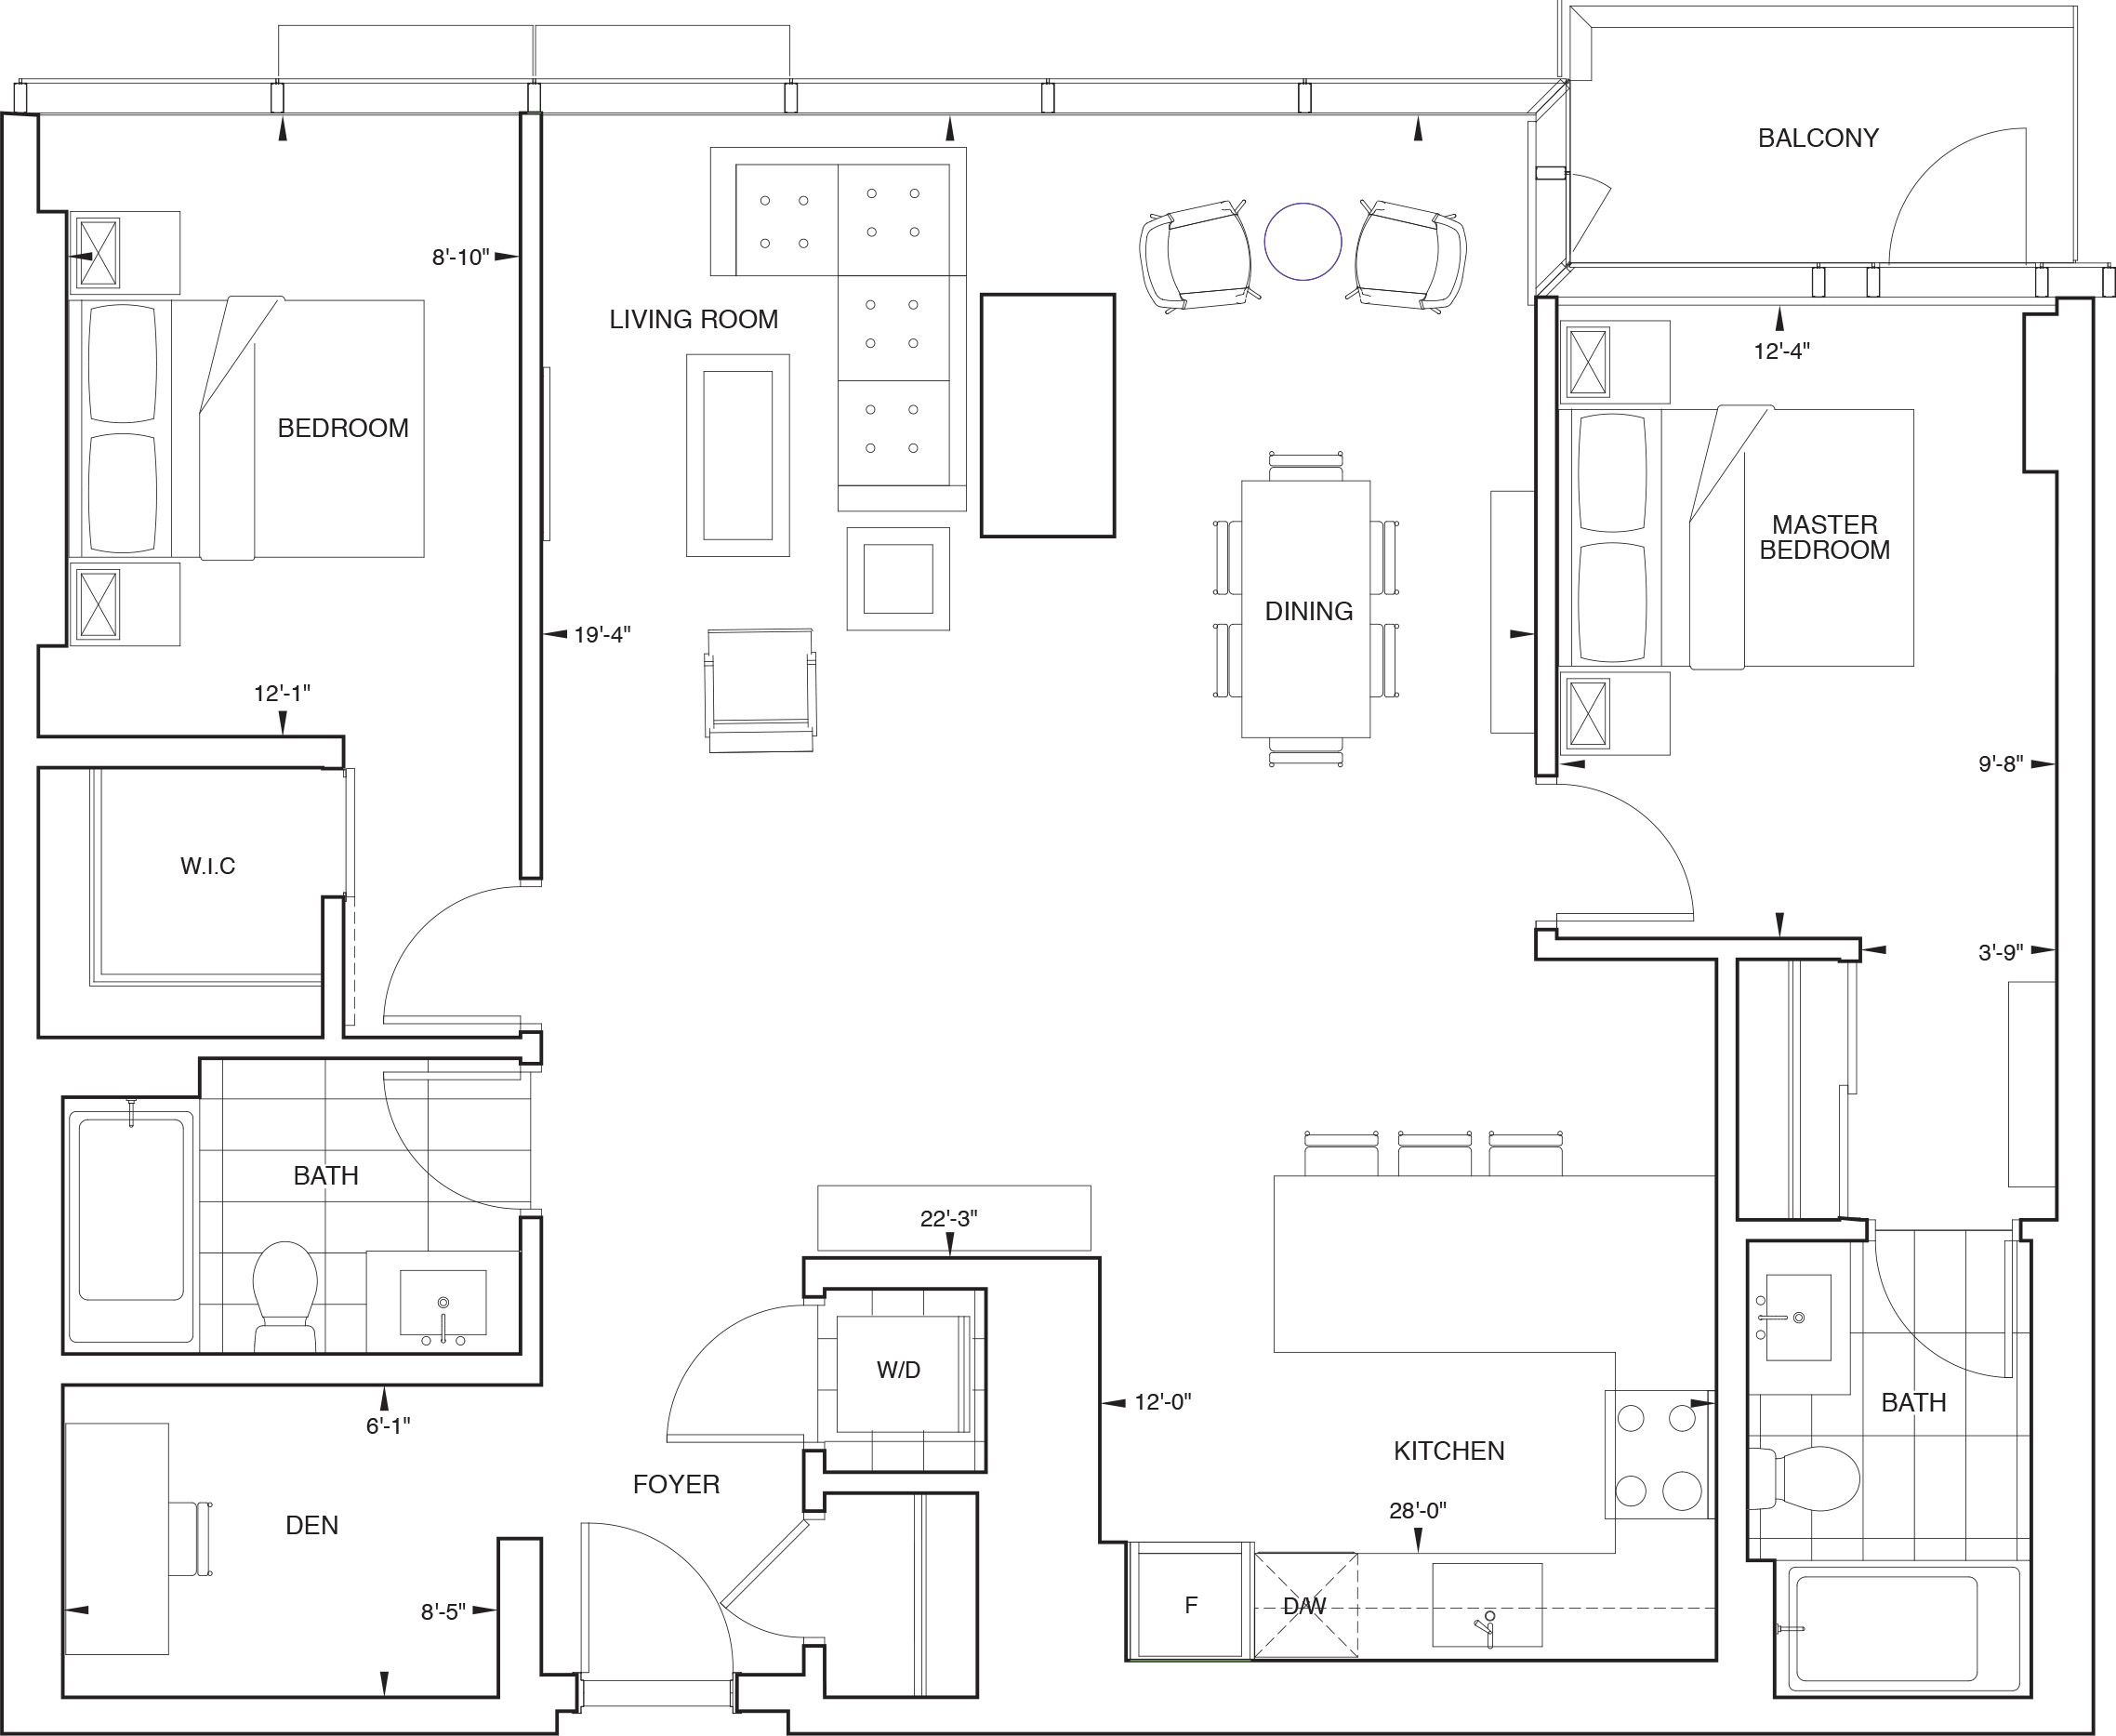 Floorplan for SKY Residence J